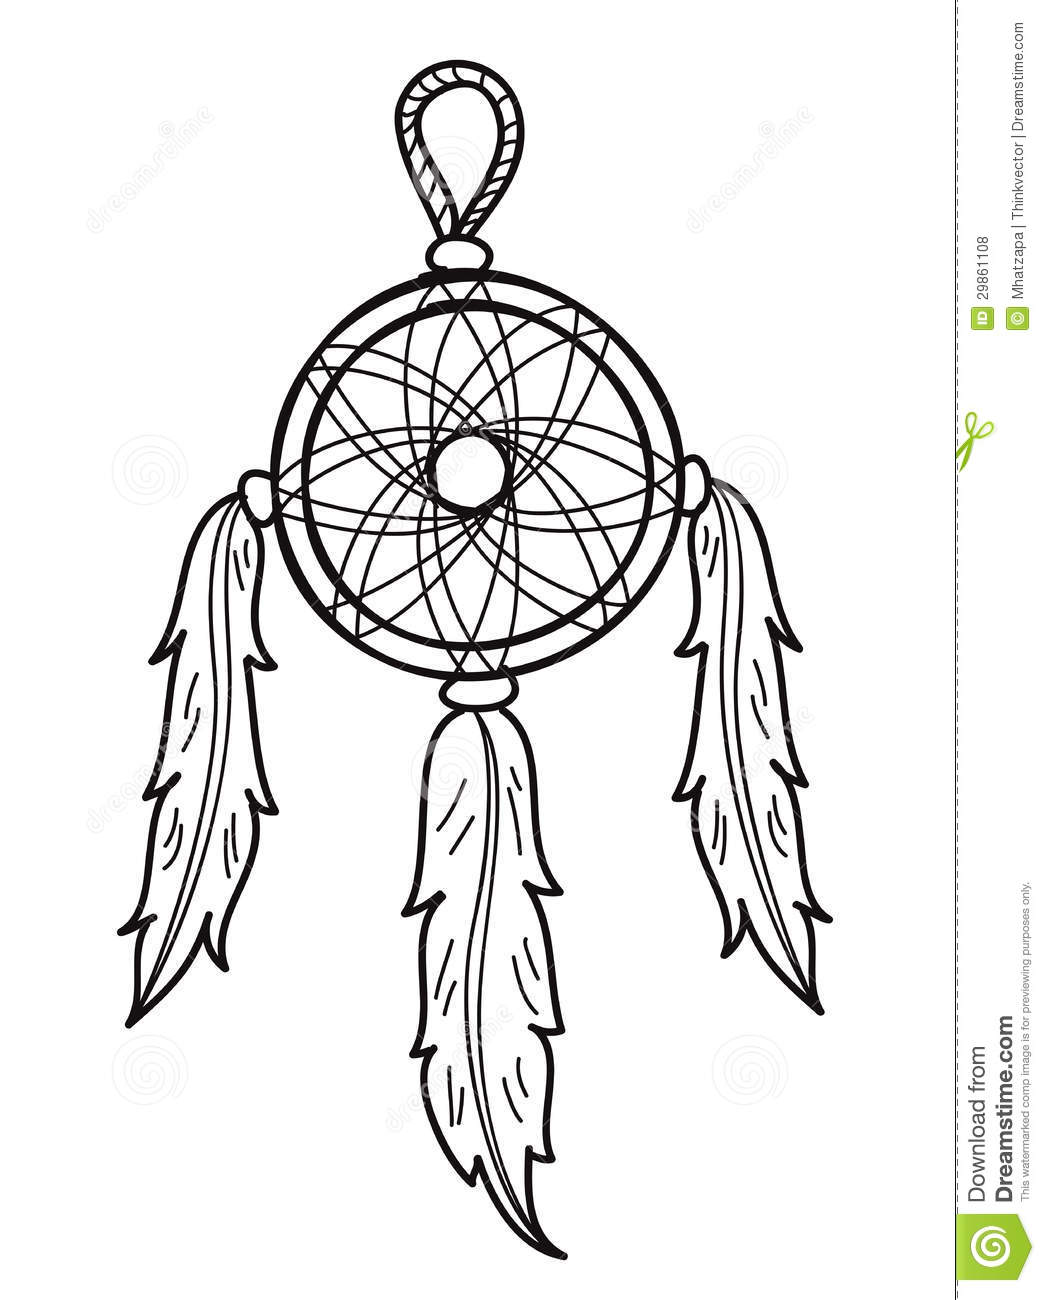 Dream catcher royalty free stock photos image 29861108 - Dreaming of the color white ...